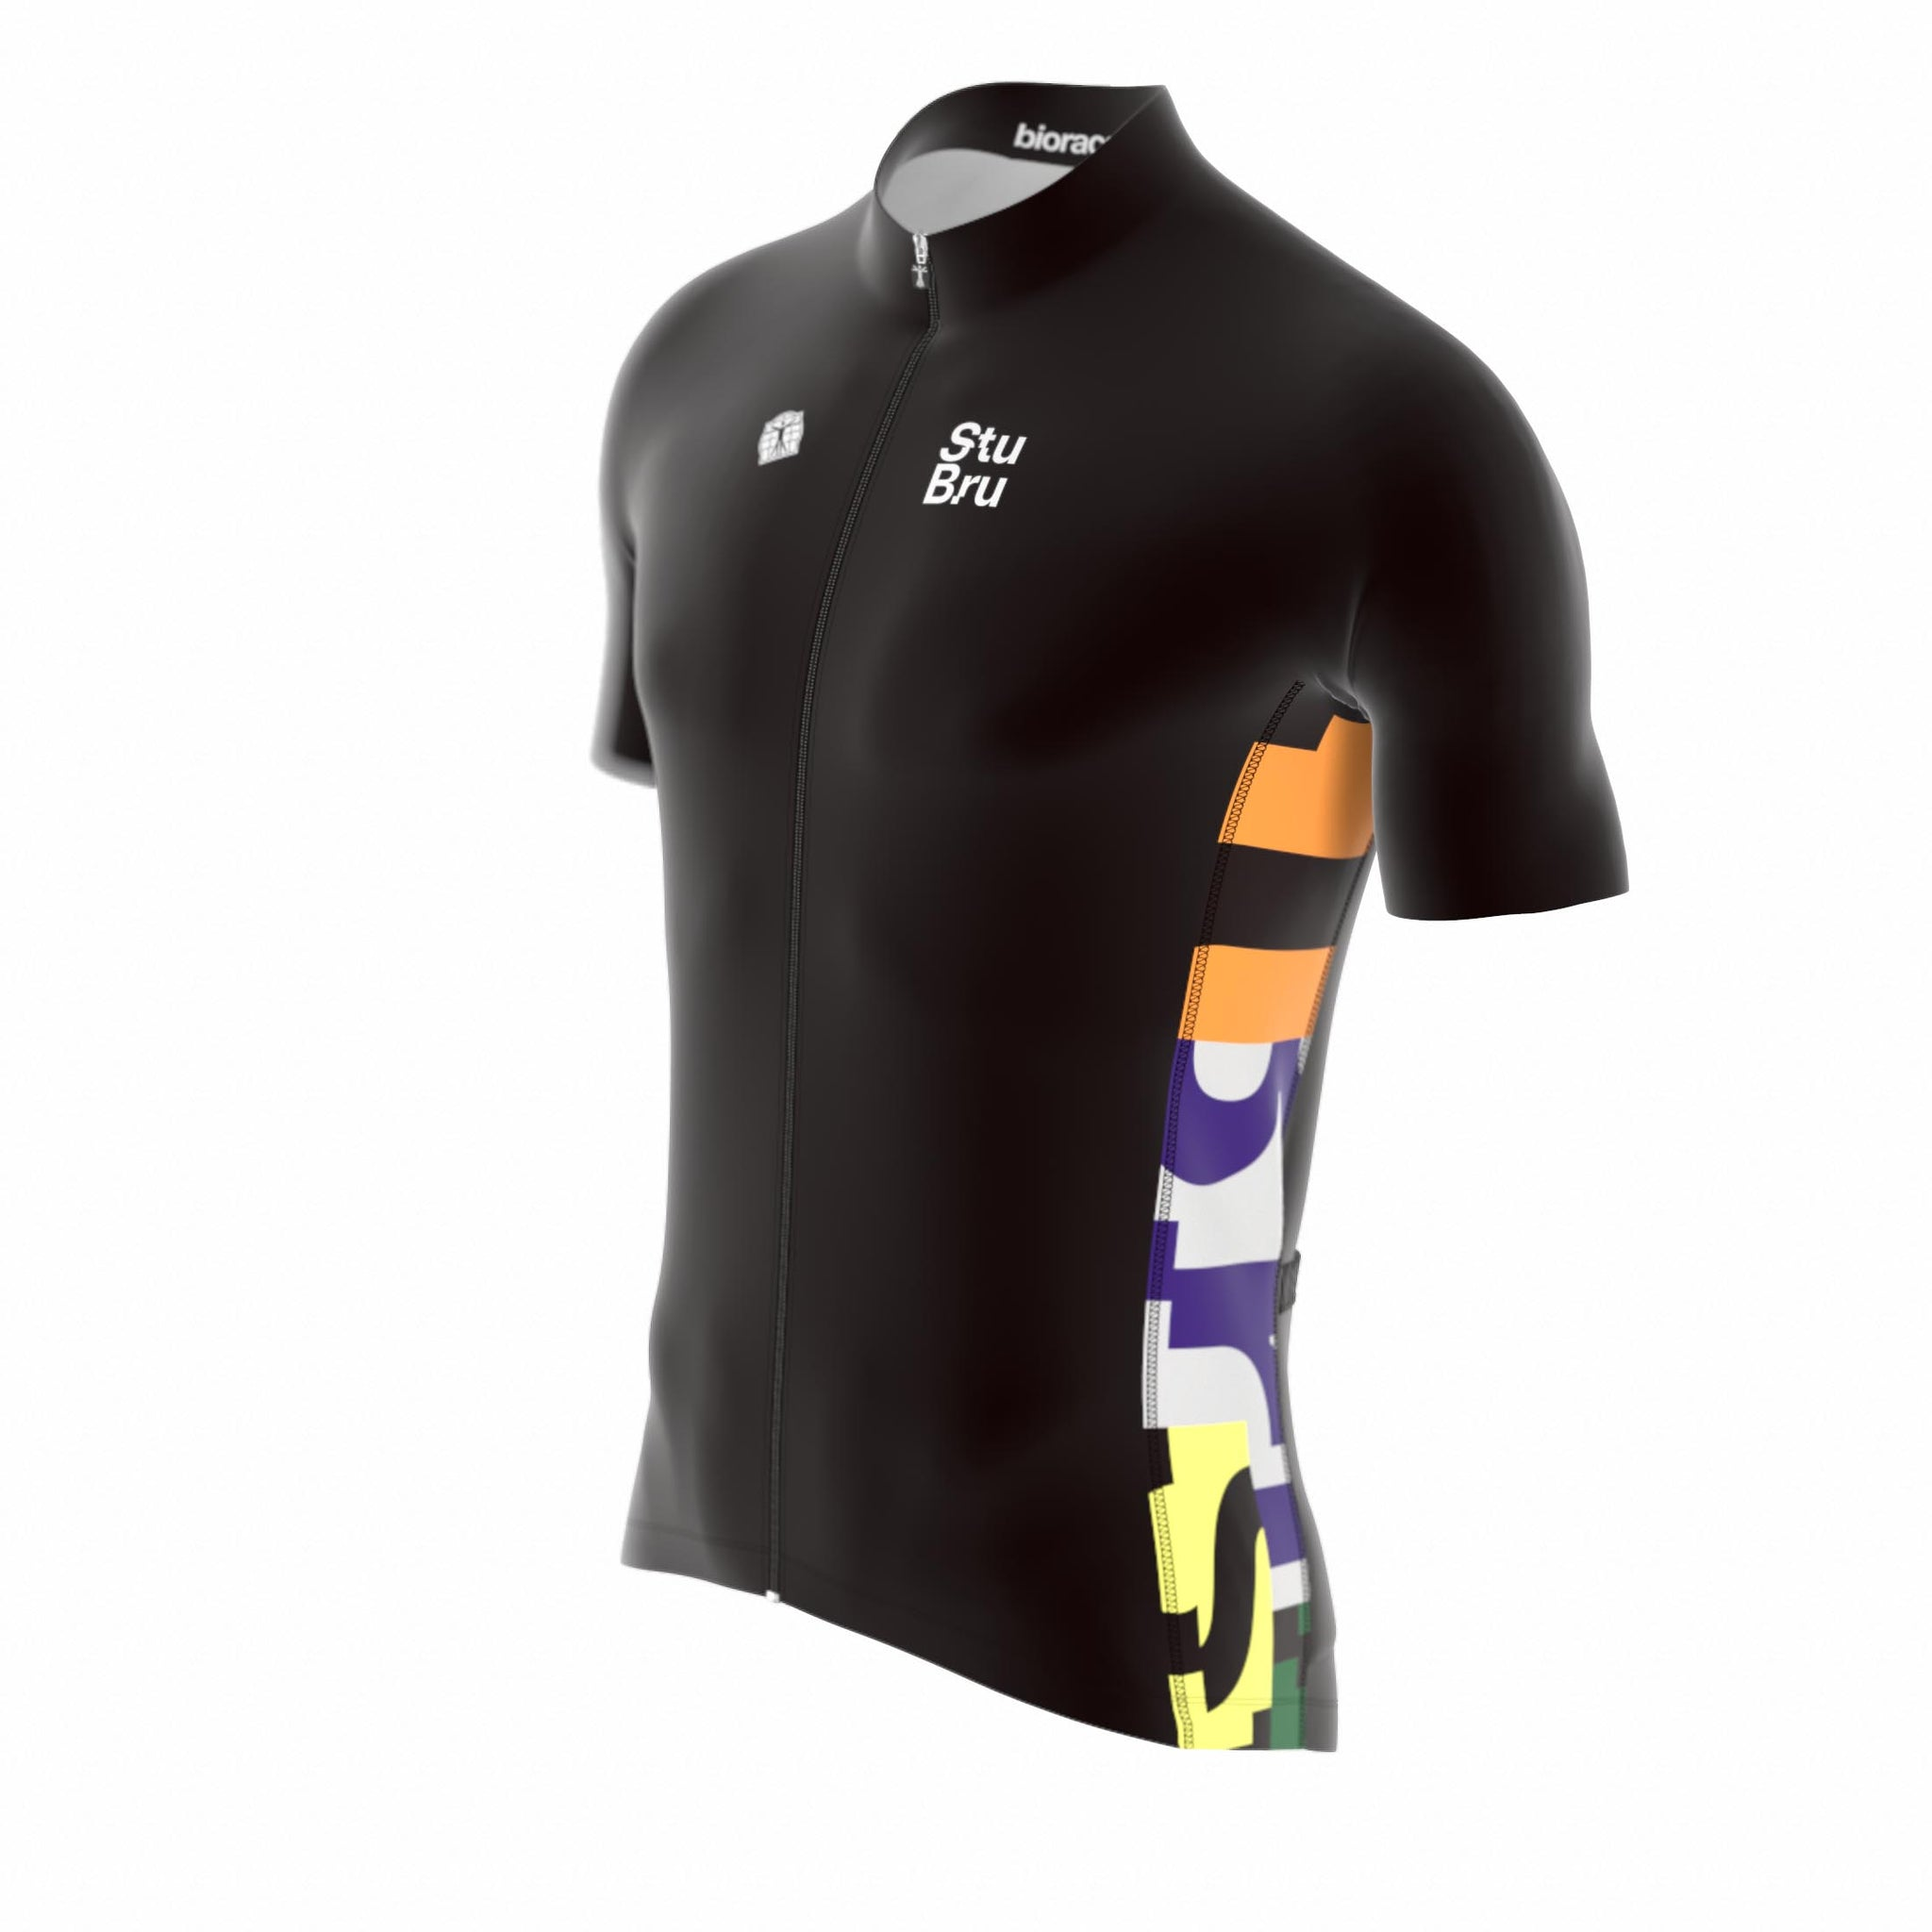 STUDIO BRUSSEL 2019 CYCLING JERSEY SS MEN